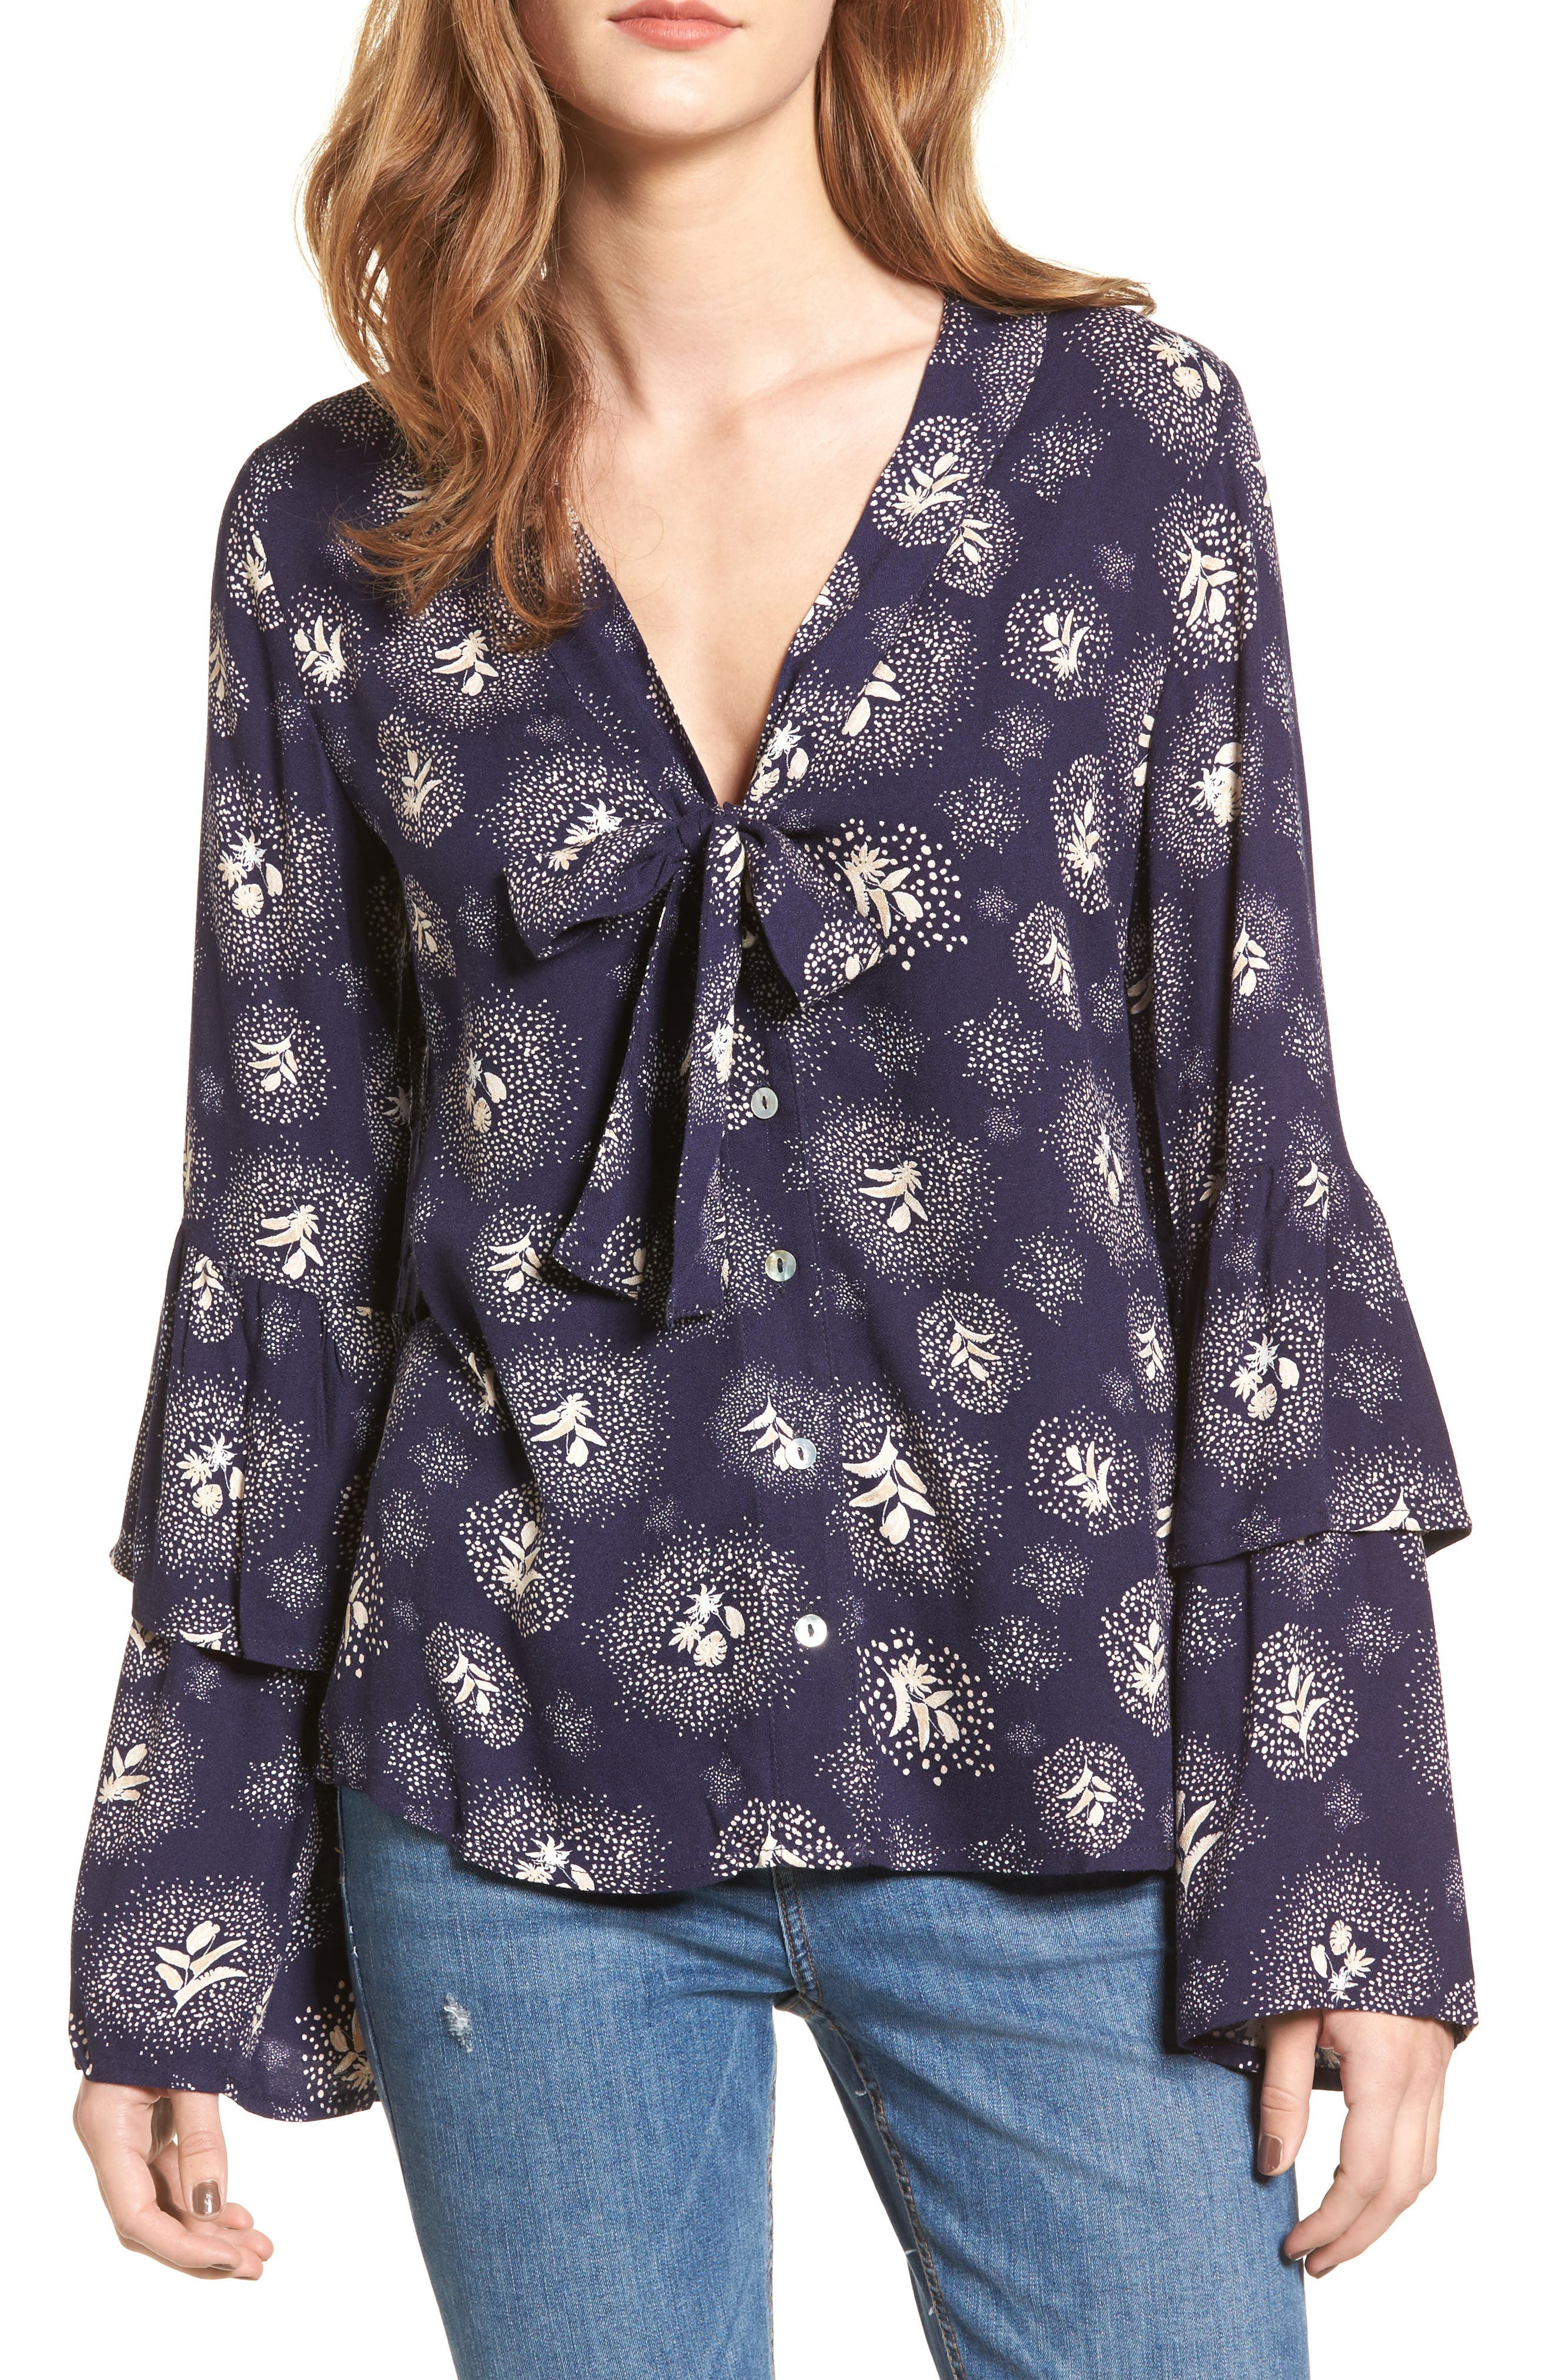 Glimmering Nights Blouse,                         Main,                         color,